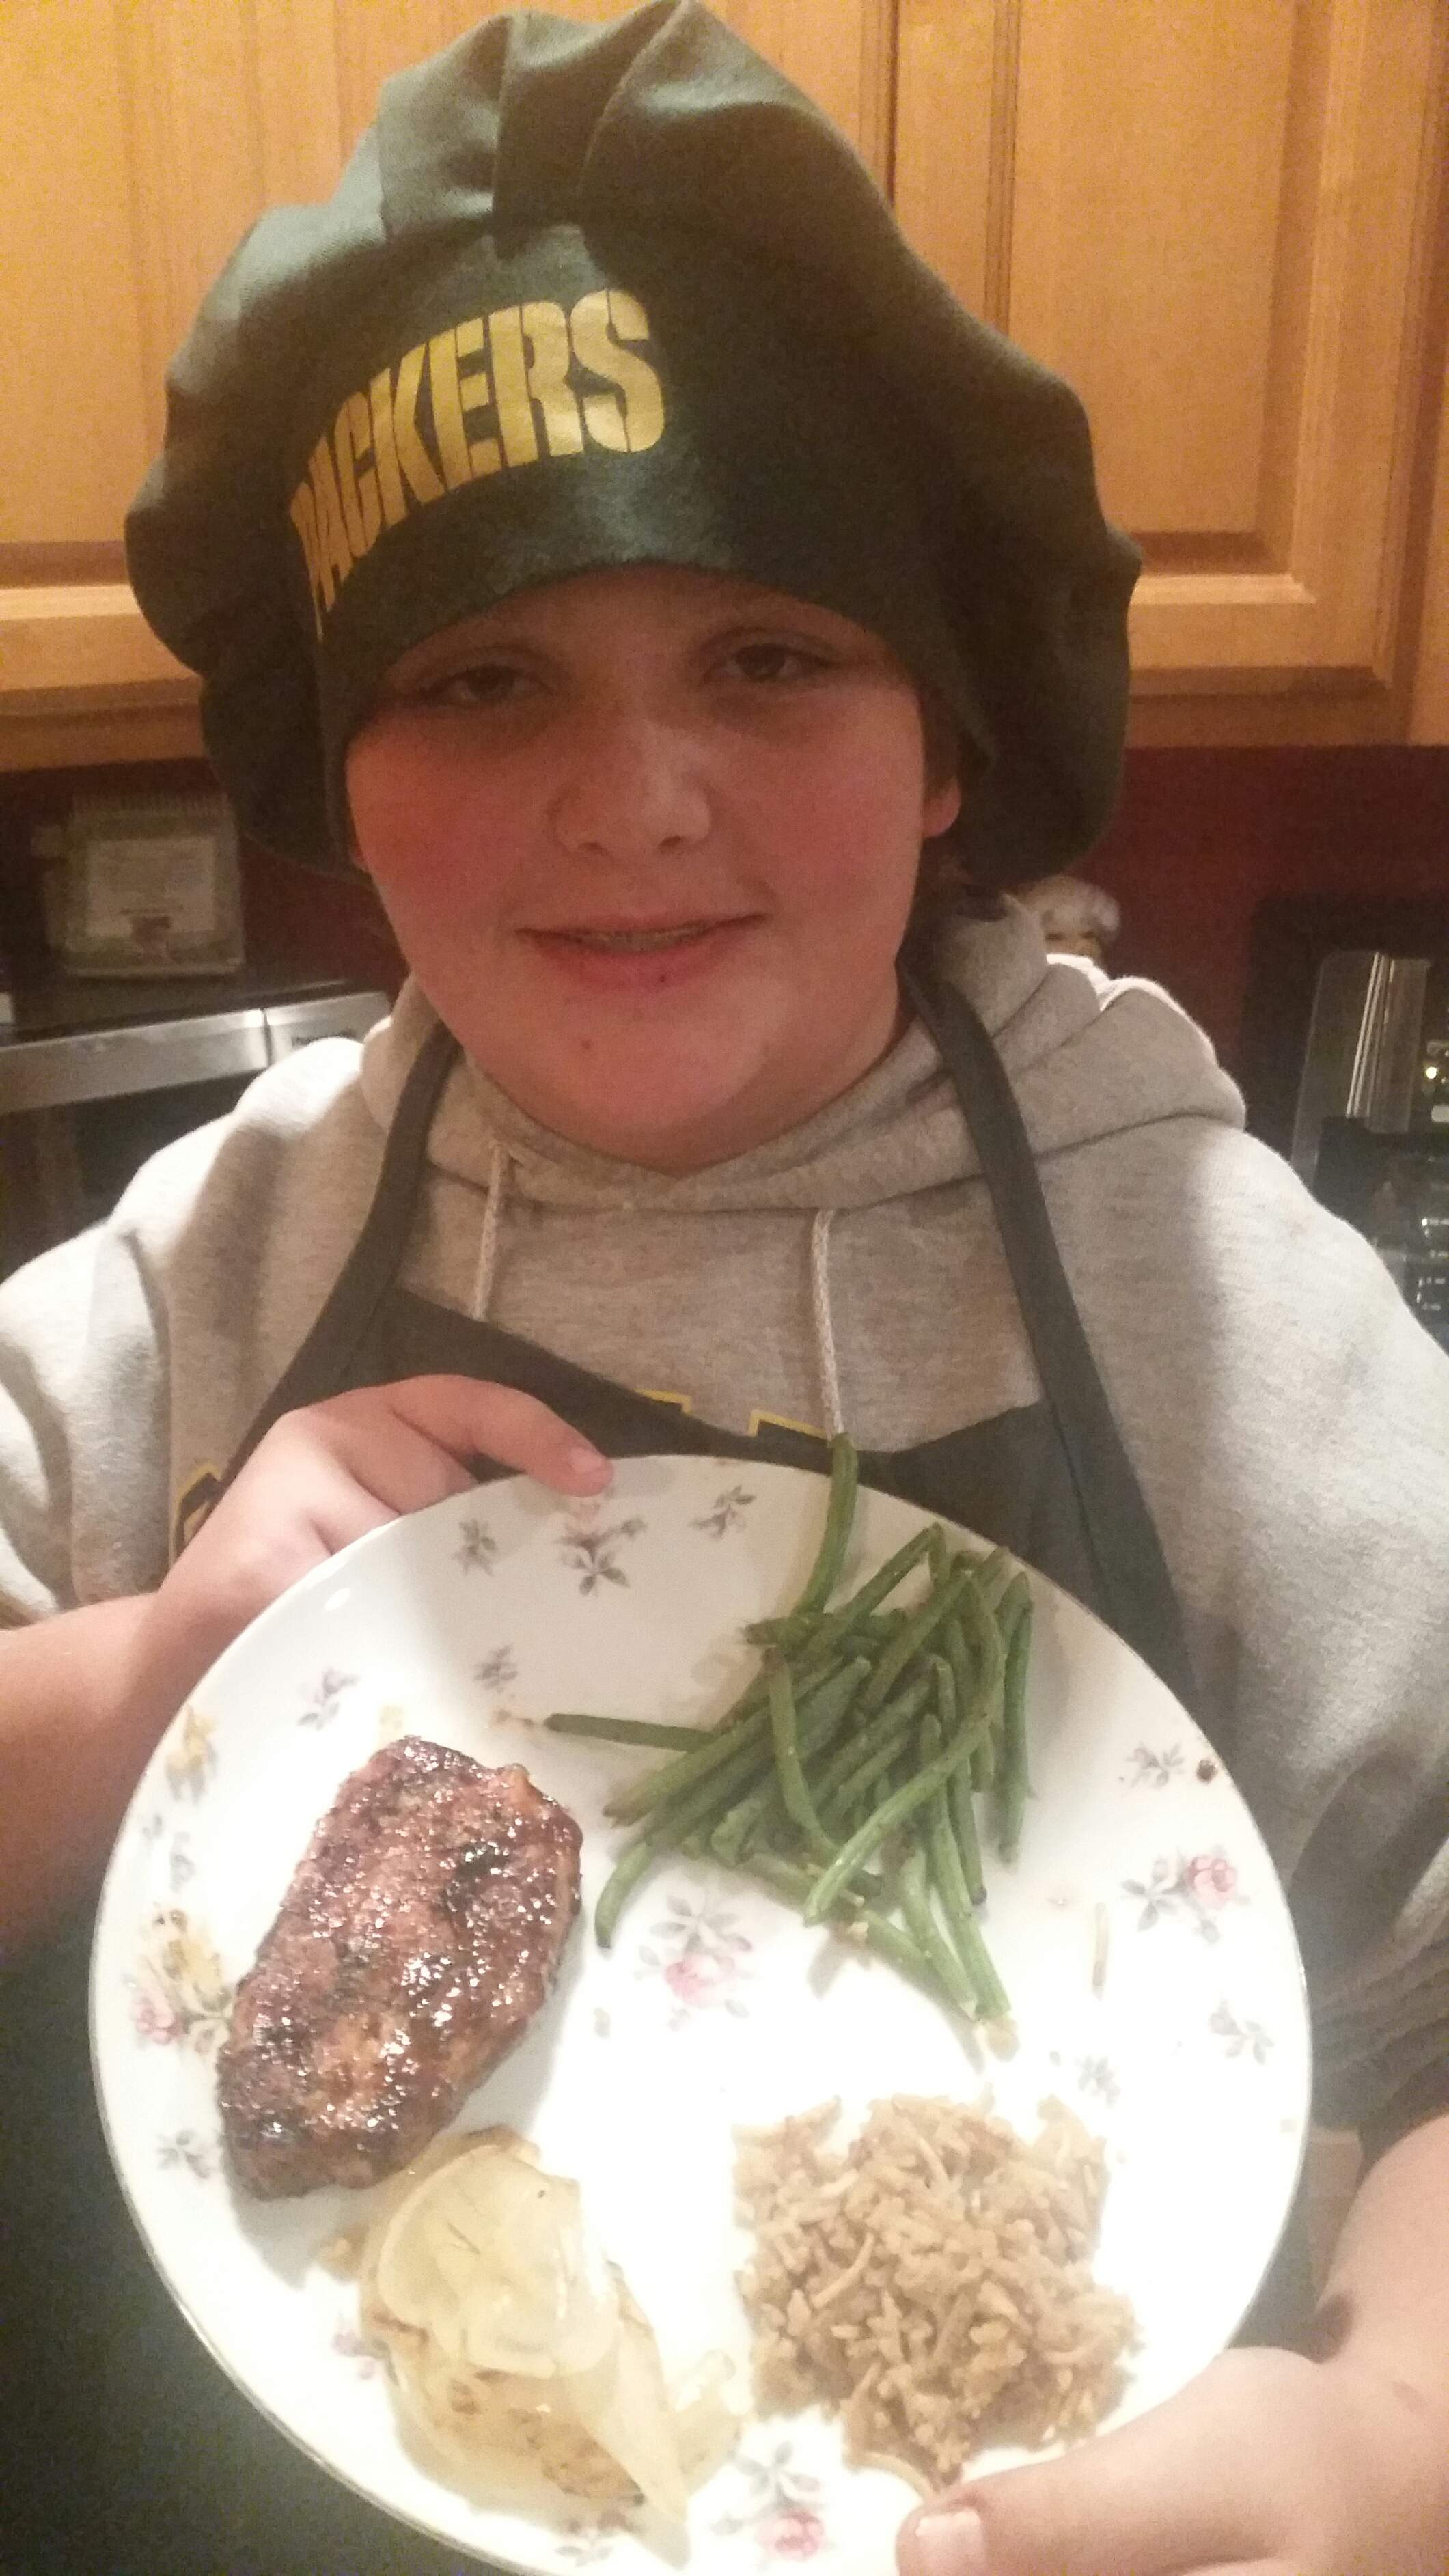 Josh Loyd, 12, of Marion, shows off one of his prepared meals. Loyd will appear June 12th on the Food Network's show, 'Kids BBQ Championship' at 7 p.m.